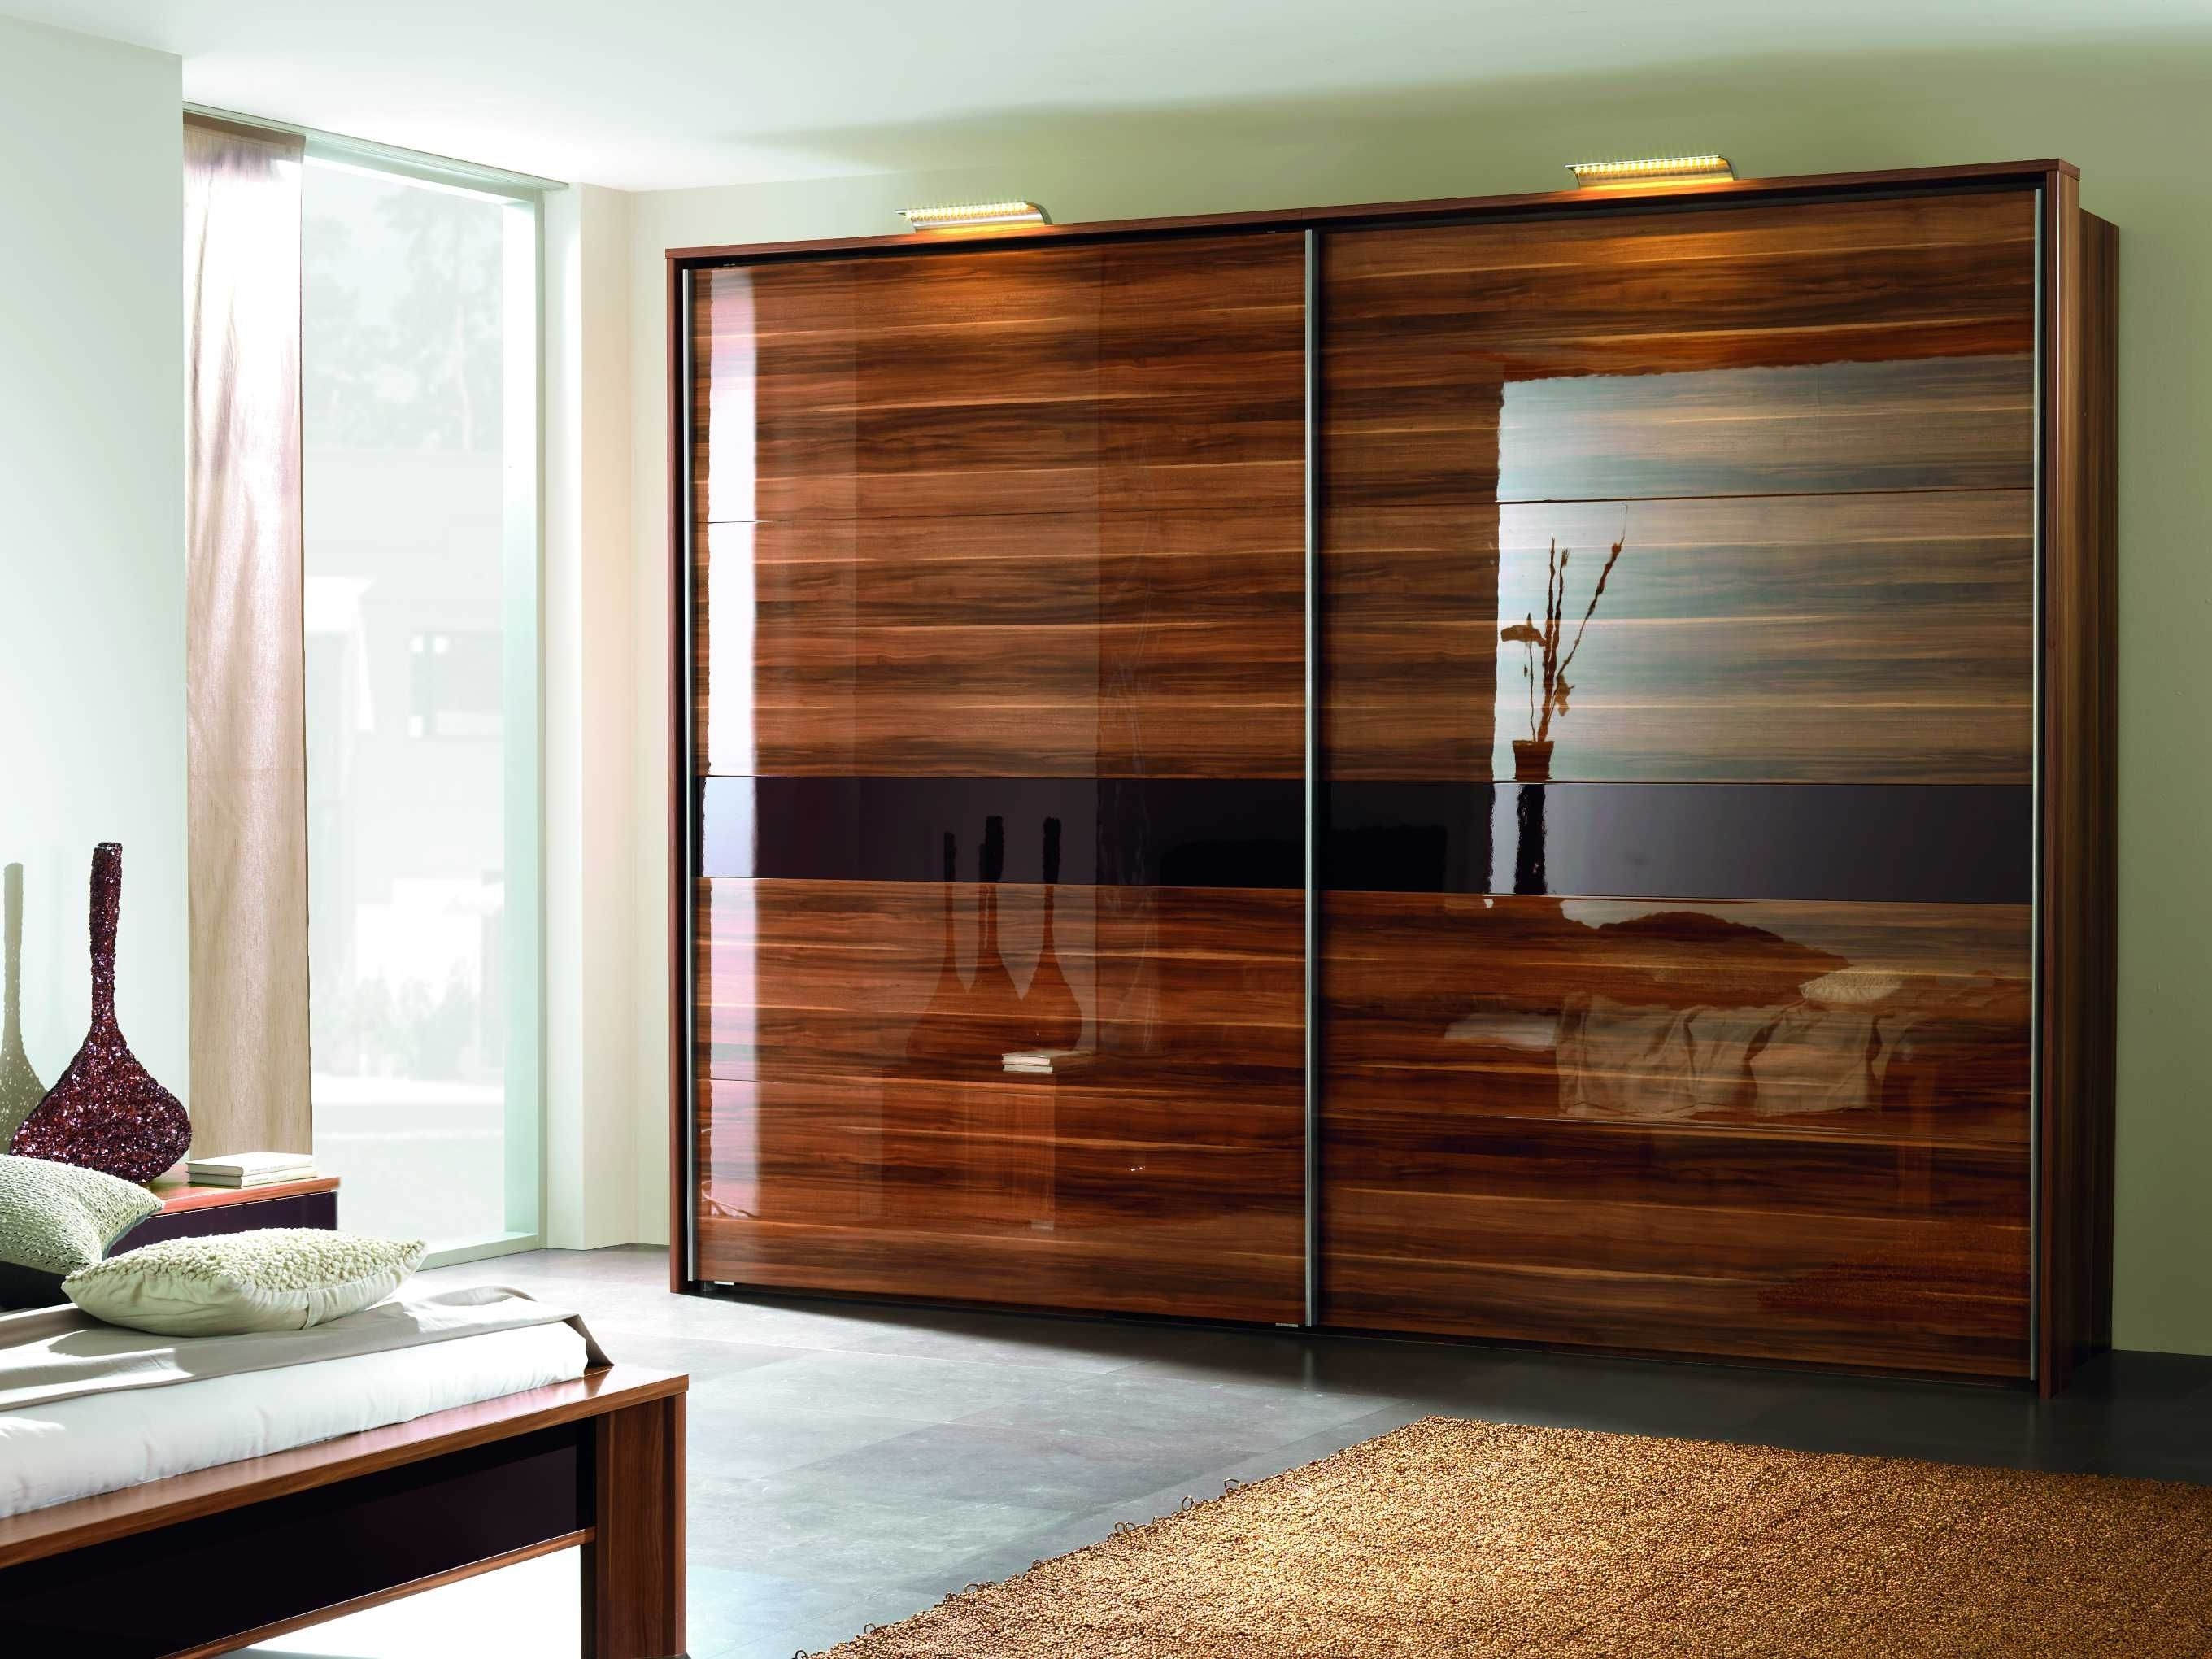 Gloss Wardrobes Within Fashionable Furniture, Luxury Wardrobe Design With Sliding Doors And Cool (View 11 of 15)